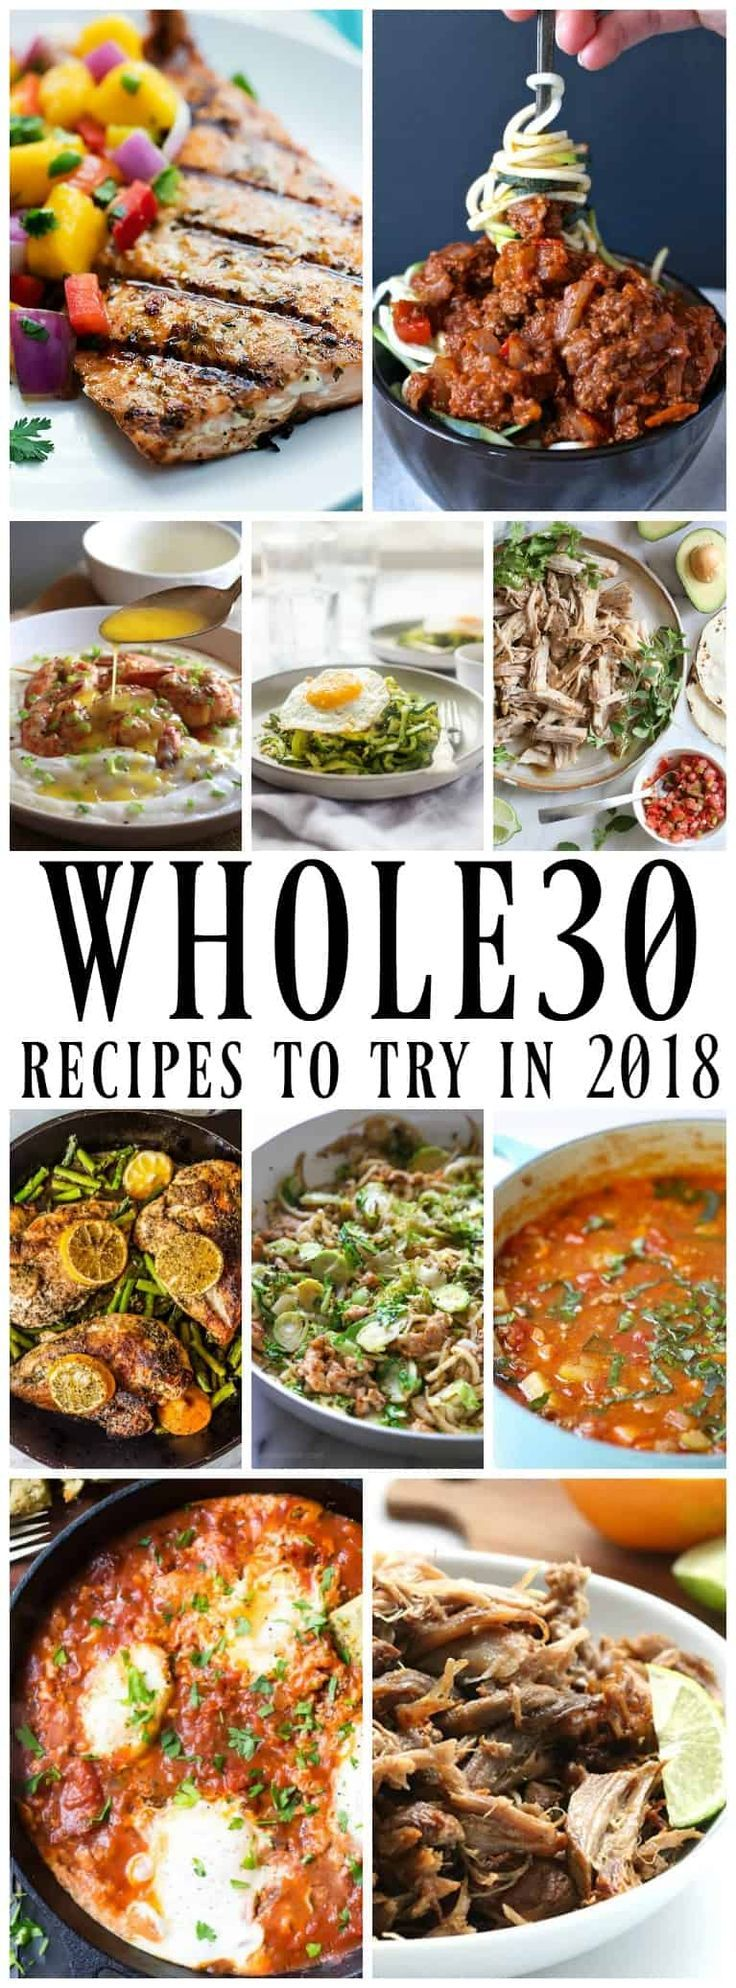 50 of the Best Whole30 Recipes - Mouthwatering dishes that range from simple to a little more intricate, all of these need to be made in 2018.